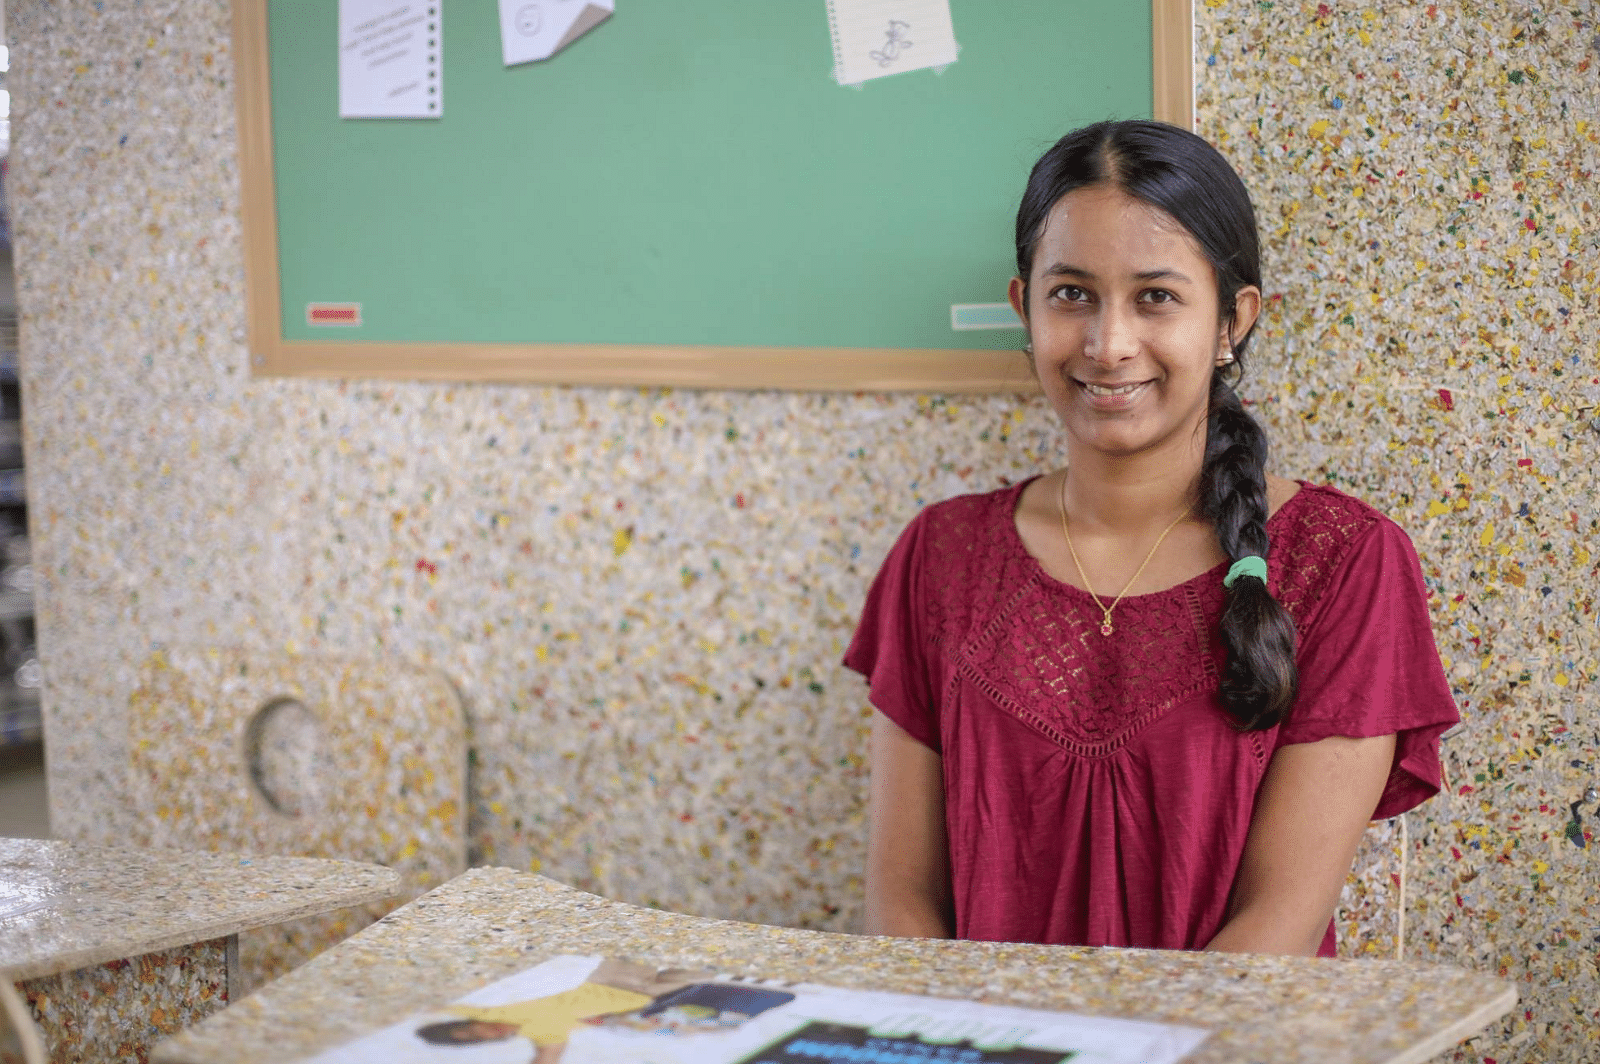 Mumbai Girl Helps Society Recycle 80% Waste, Upcycles Cardboard into Stationery!